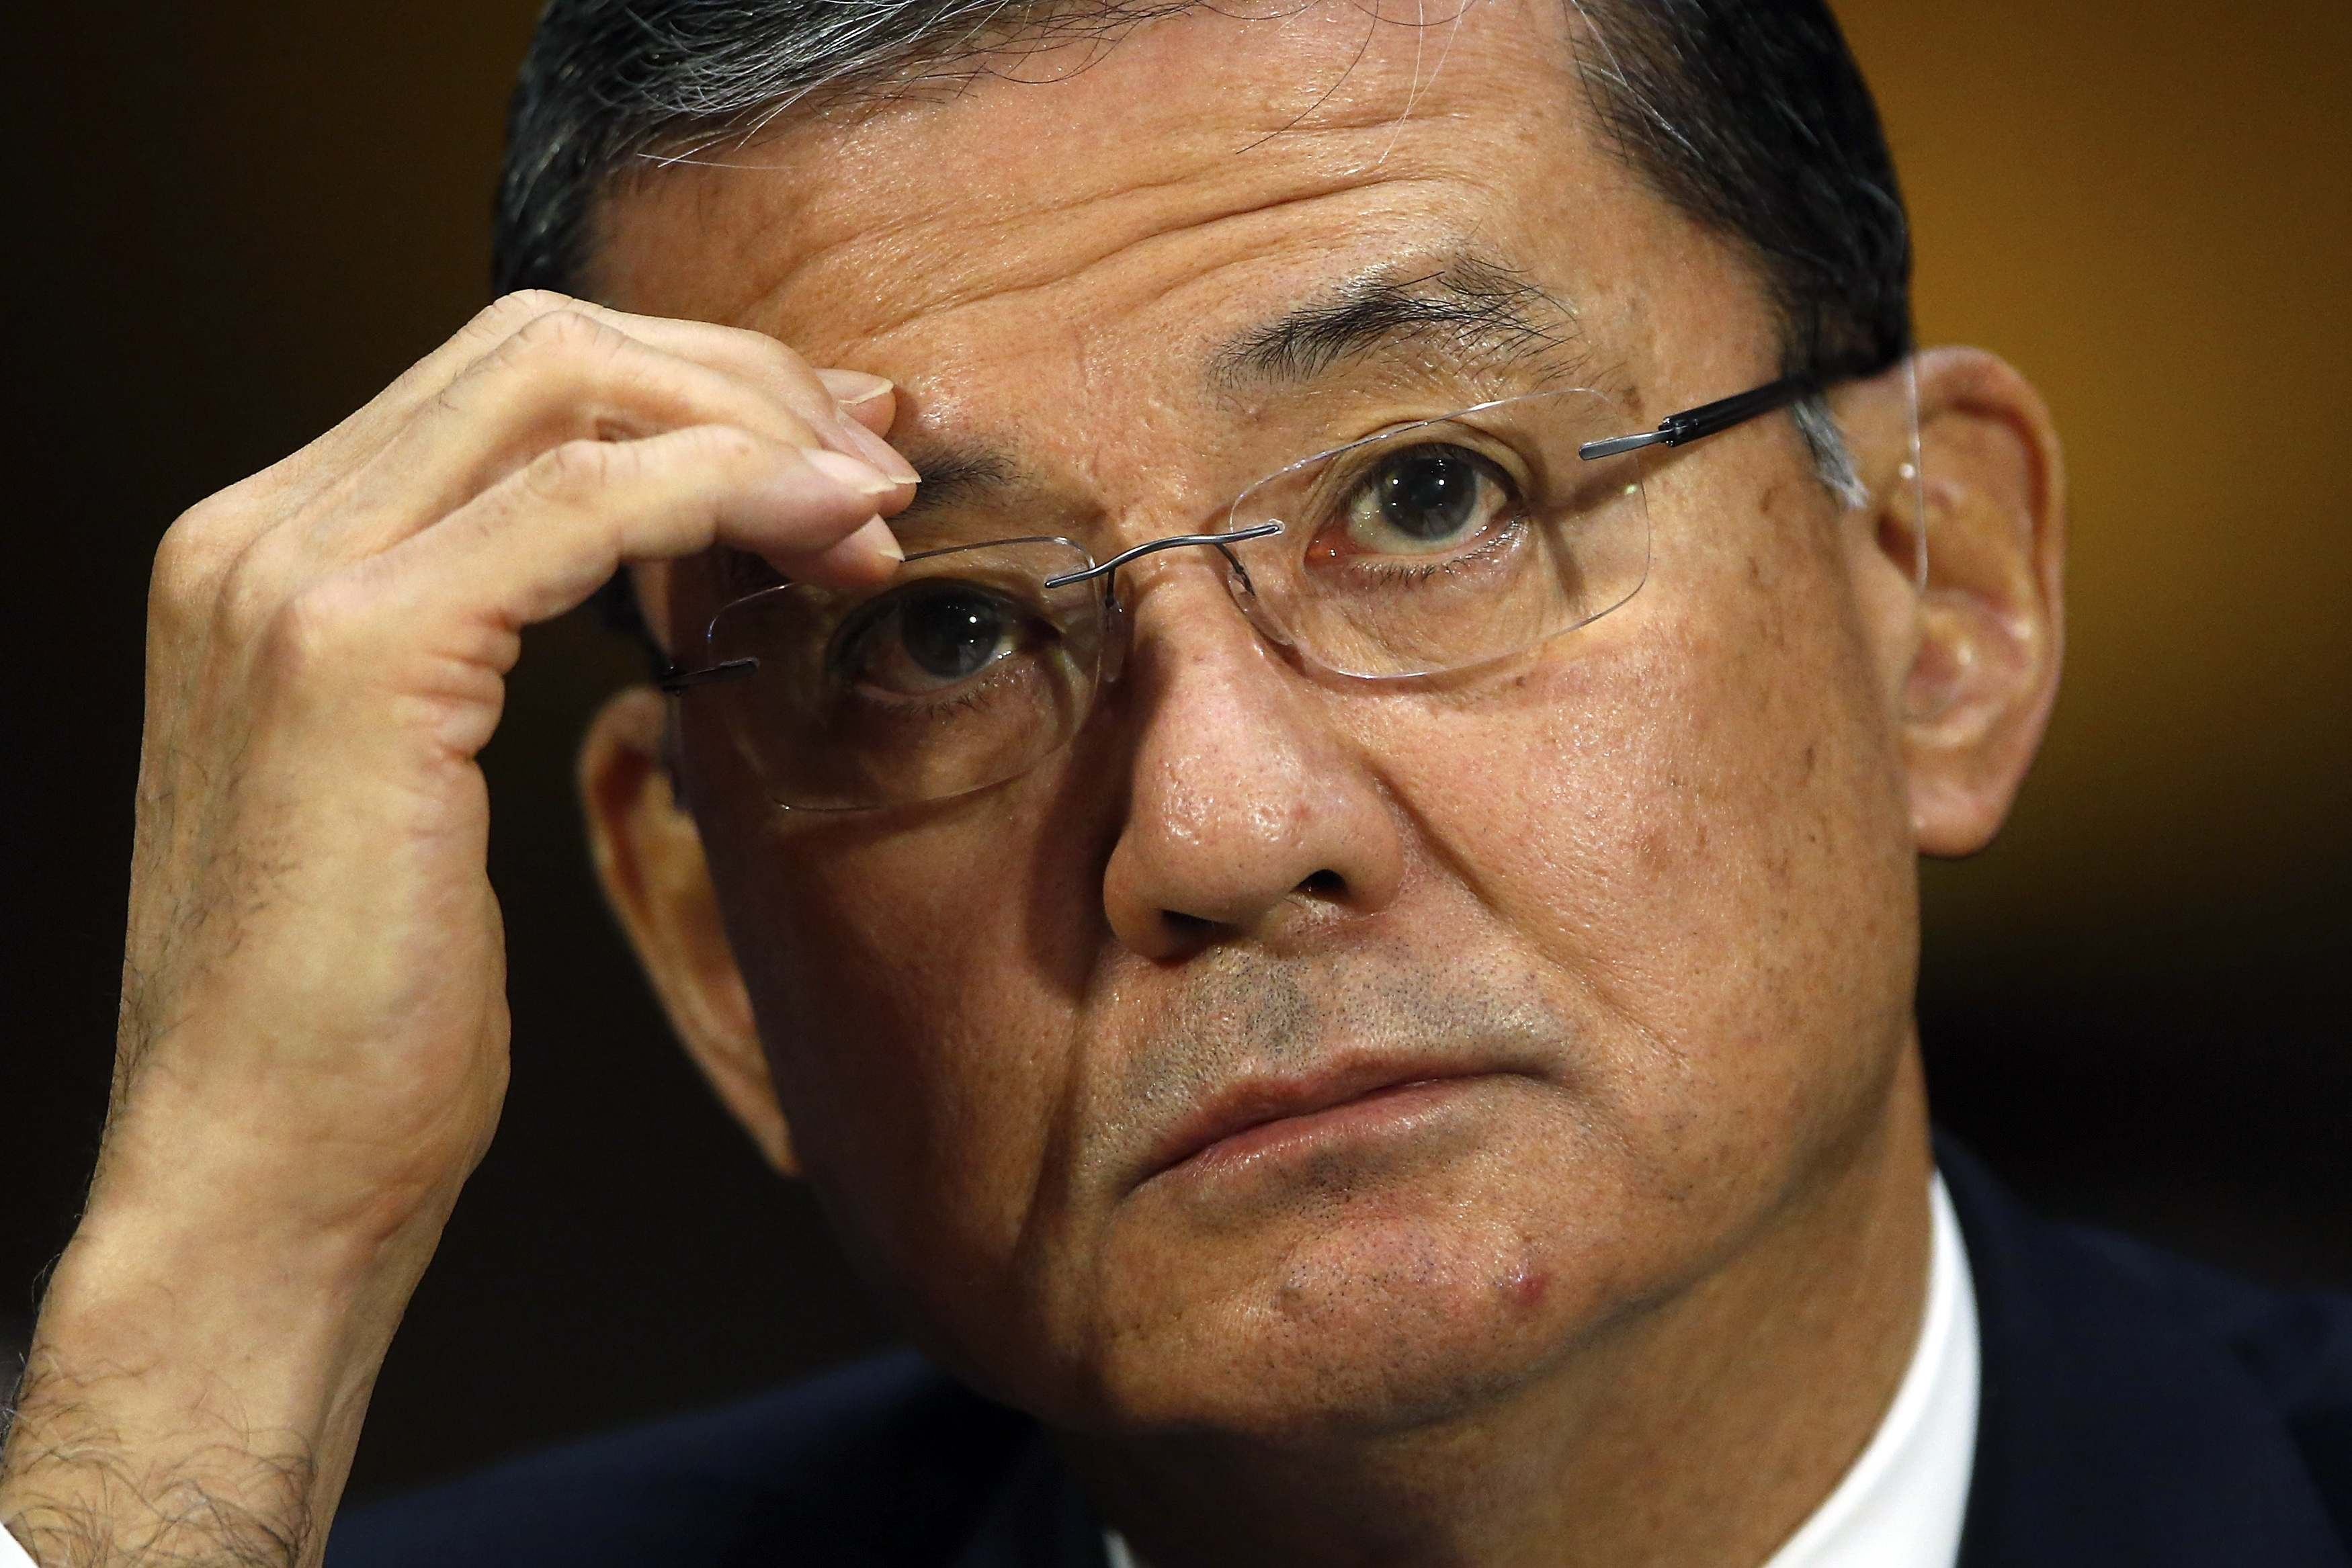 U.S. Department of Veterans Affairs Secretary Eric Shinseki testifies before a Senate Veterans Affairs Committee hearing on VA health care, on Capitol Hill in Washington, May 15, 2014.